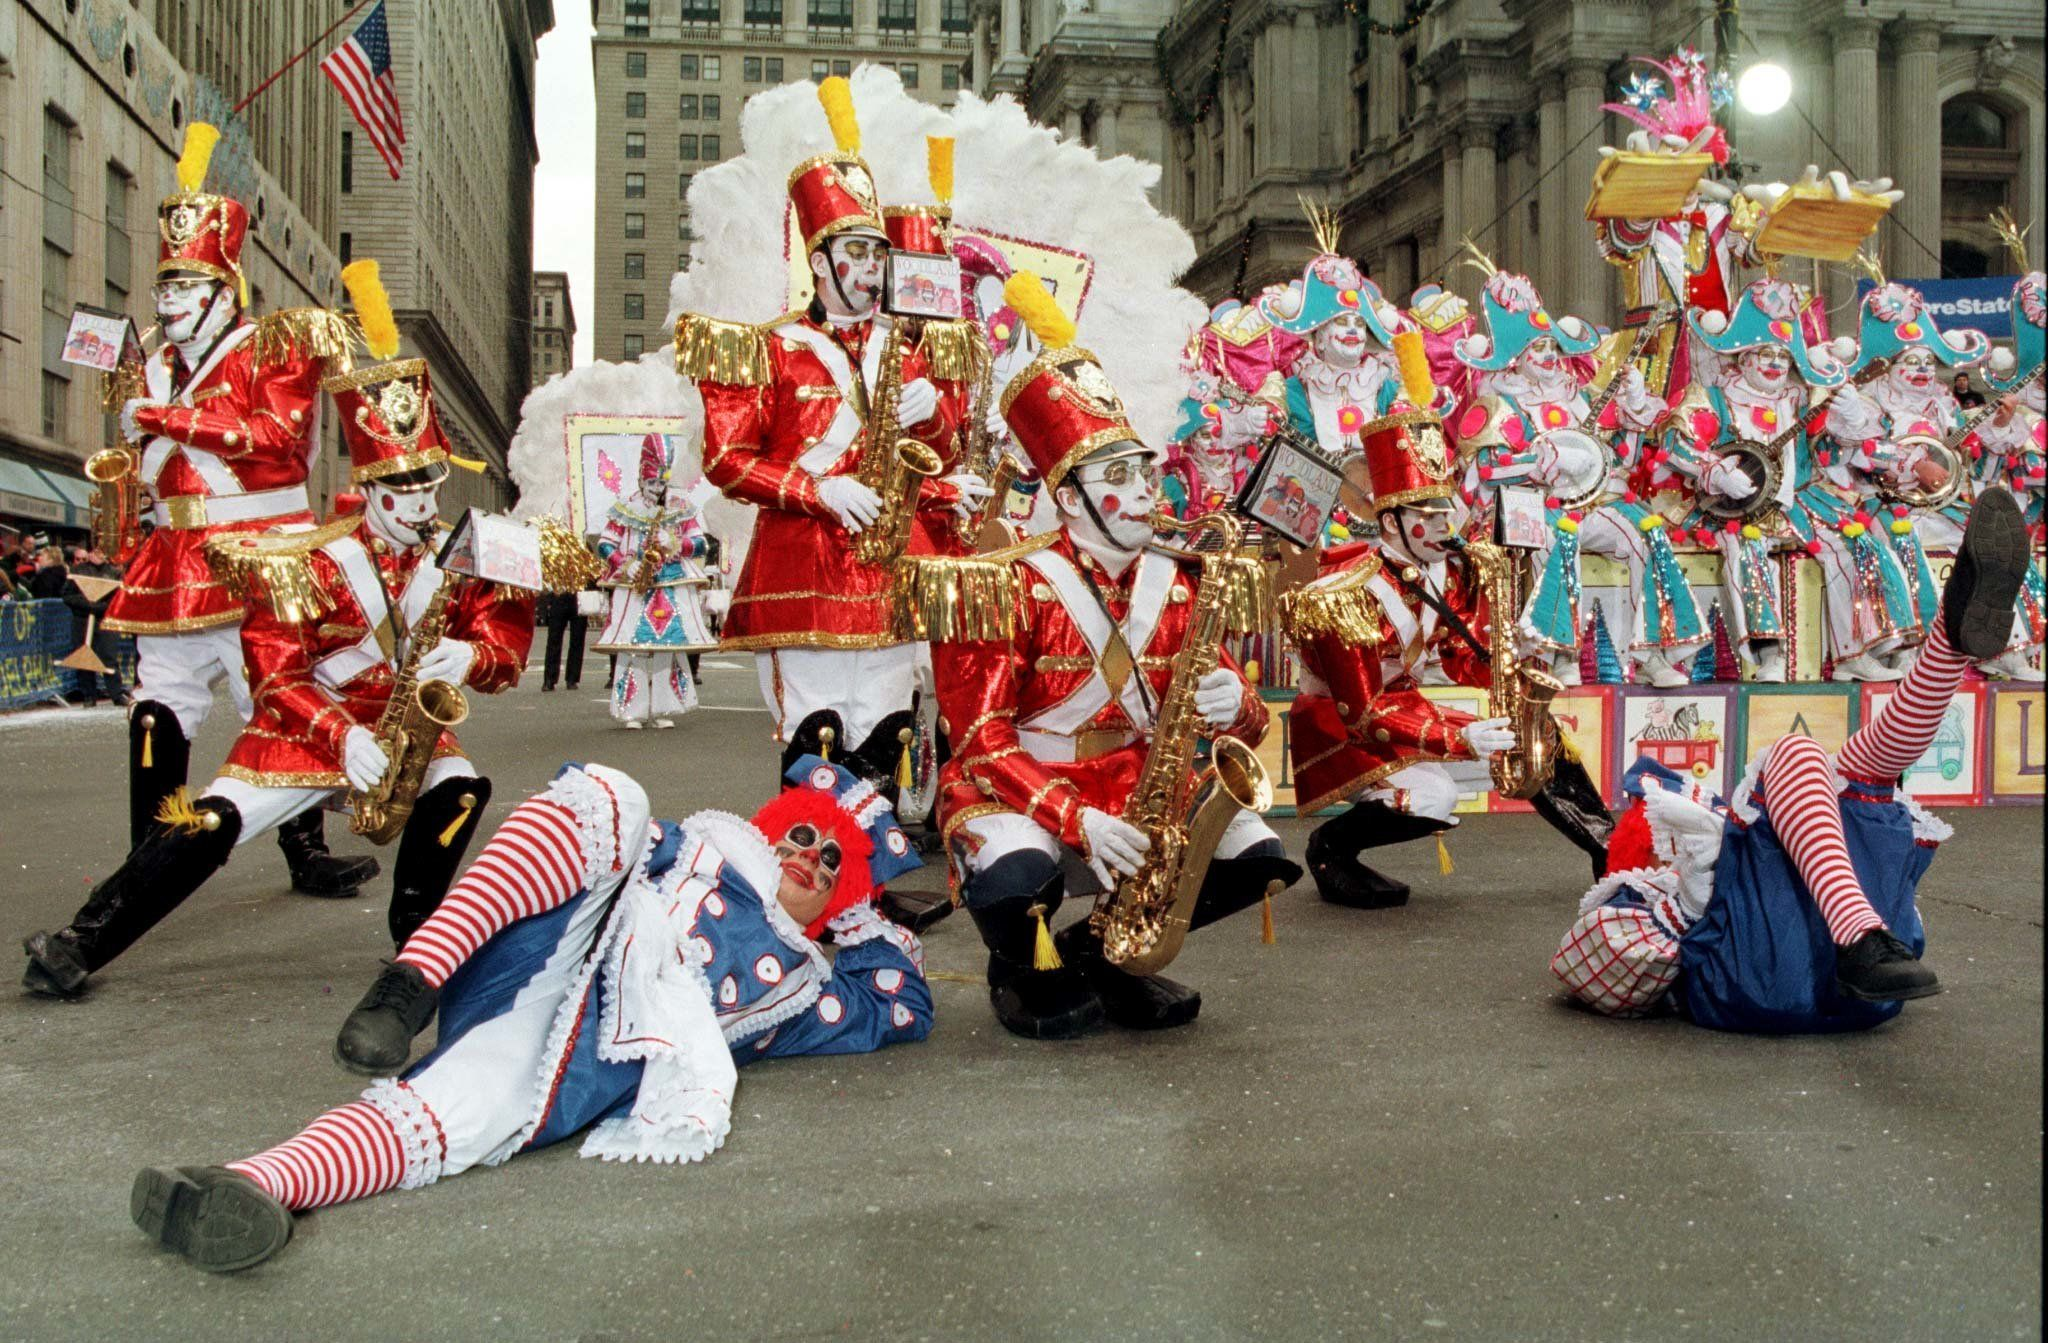 Members of the string band, Polish America, perform in front of the judges on Broad Street at City Hall. There were 42 clubs in the comic, fancy, string band and brigade divisions that competed in this year's 98th Mummers Parade in Philadelphia, Pennsylvania on January 1. Photo by Barbara L.  MUMMERS PARADE